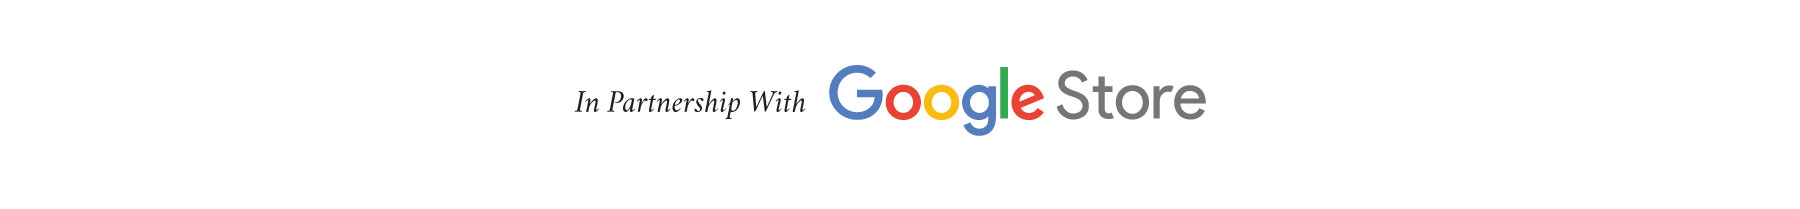 in-partnership-with-google-store.jpg